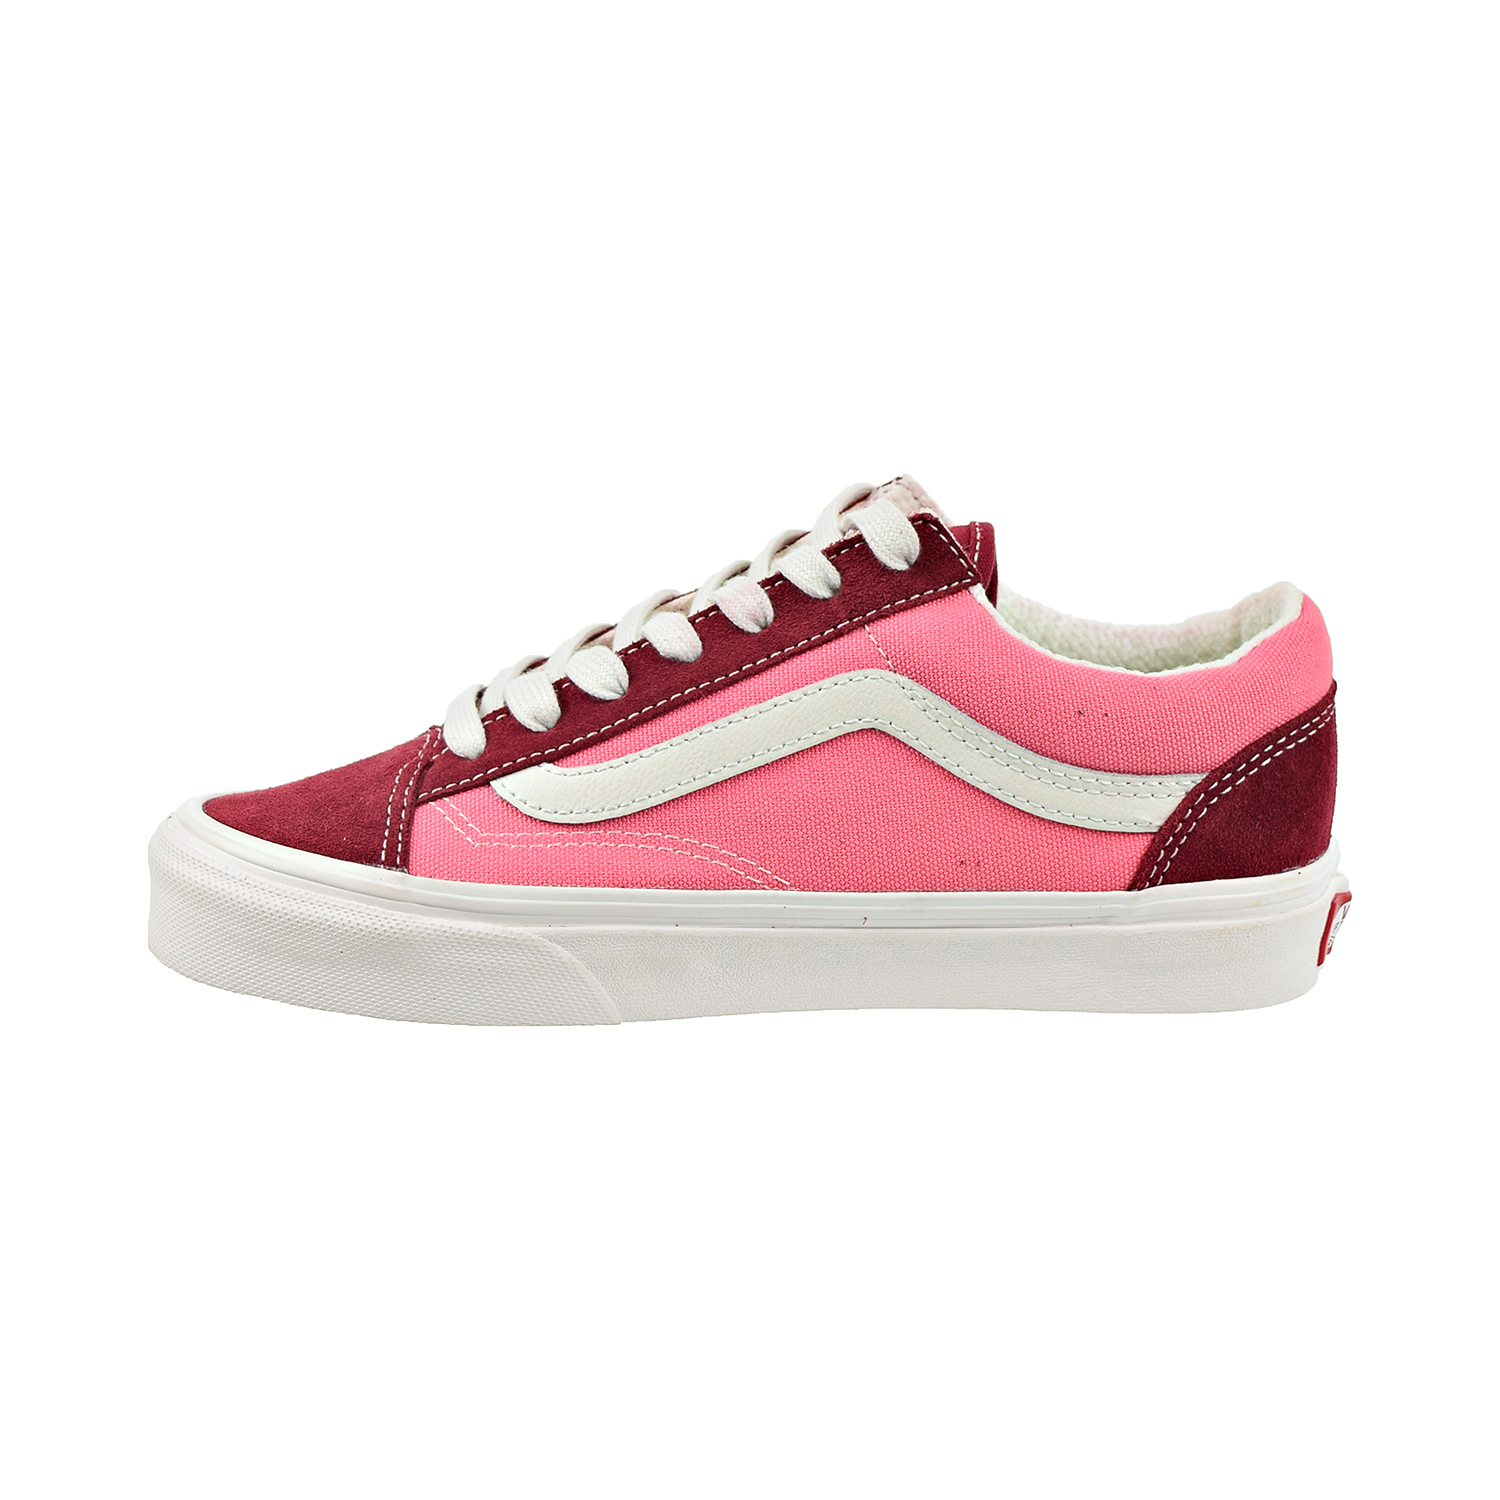 Chaussures Vans UA Style 36 Old Skool Rouge Chaussures